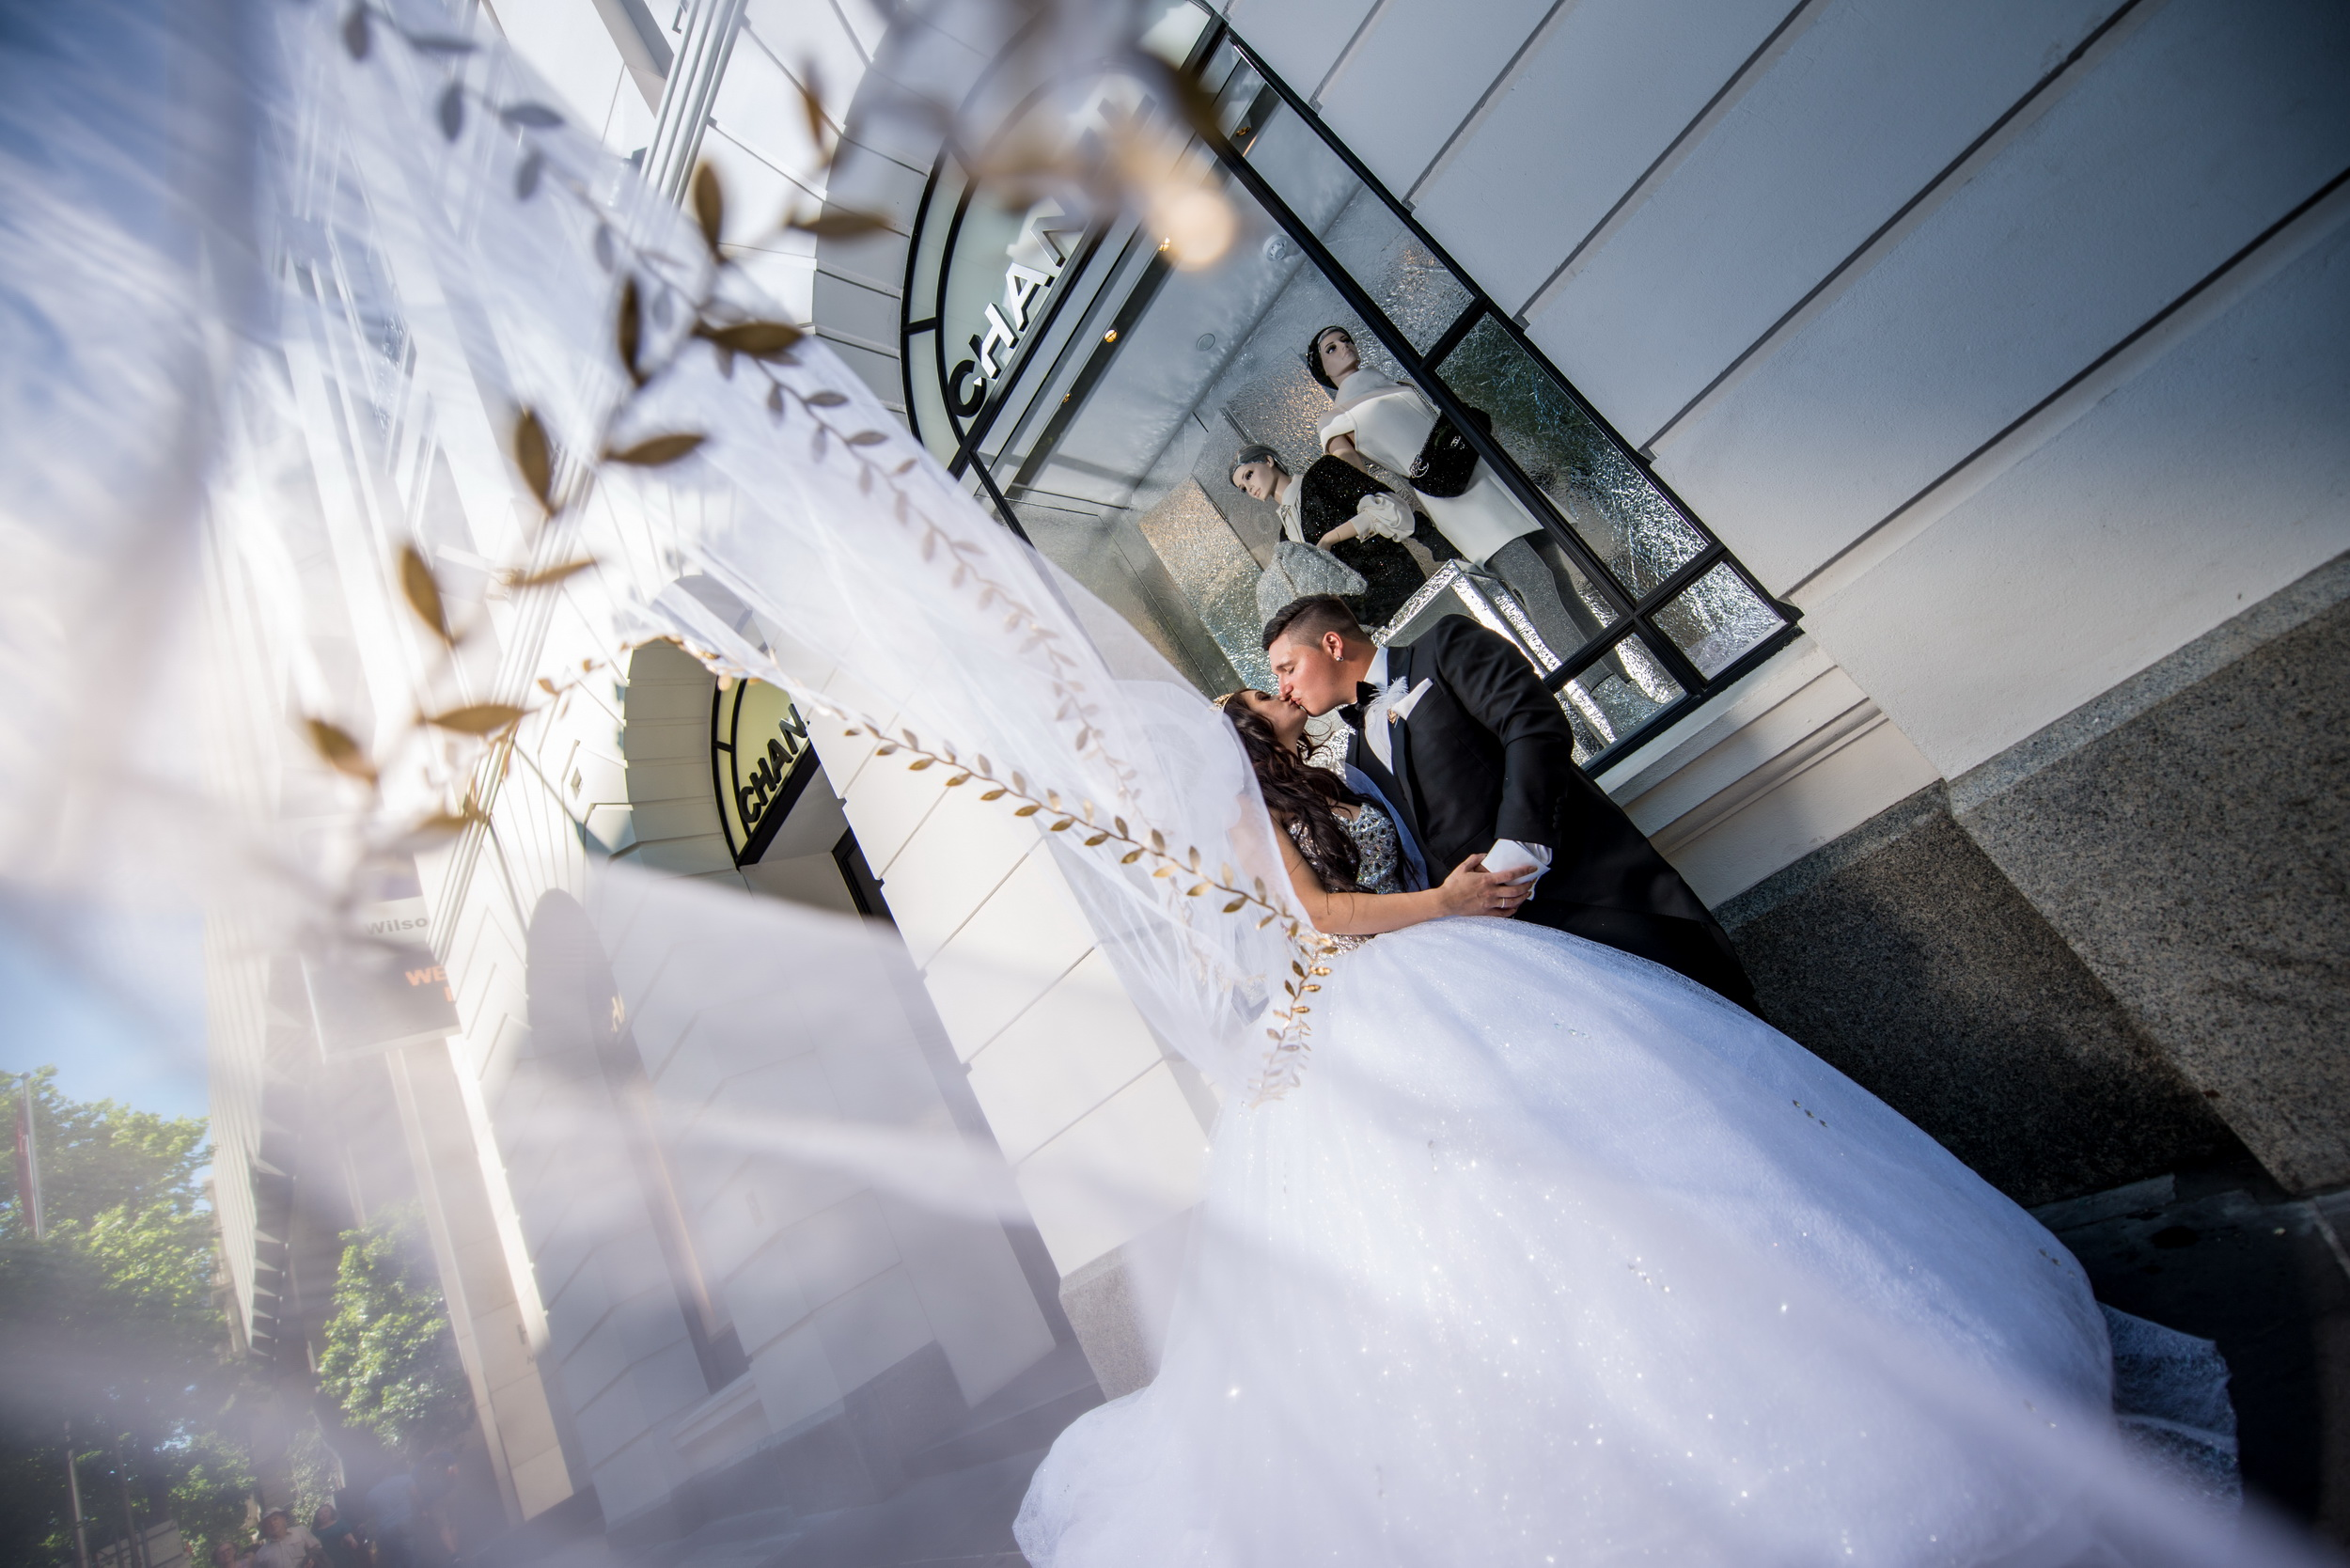 Wedding images from Melbourne CBD